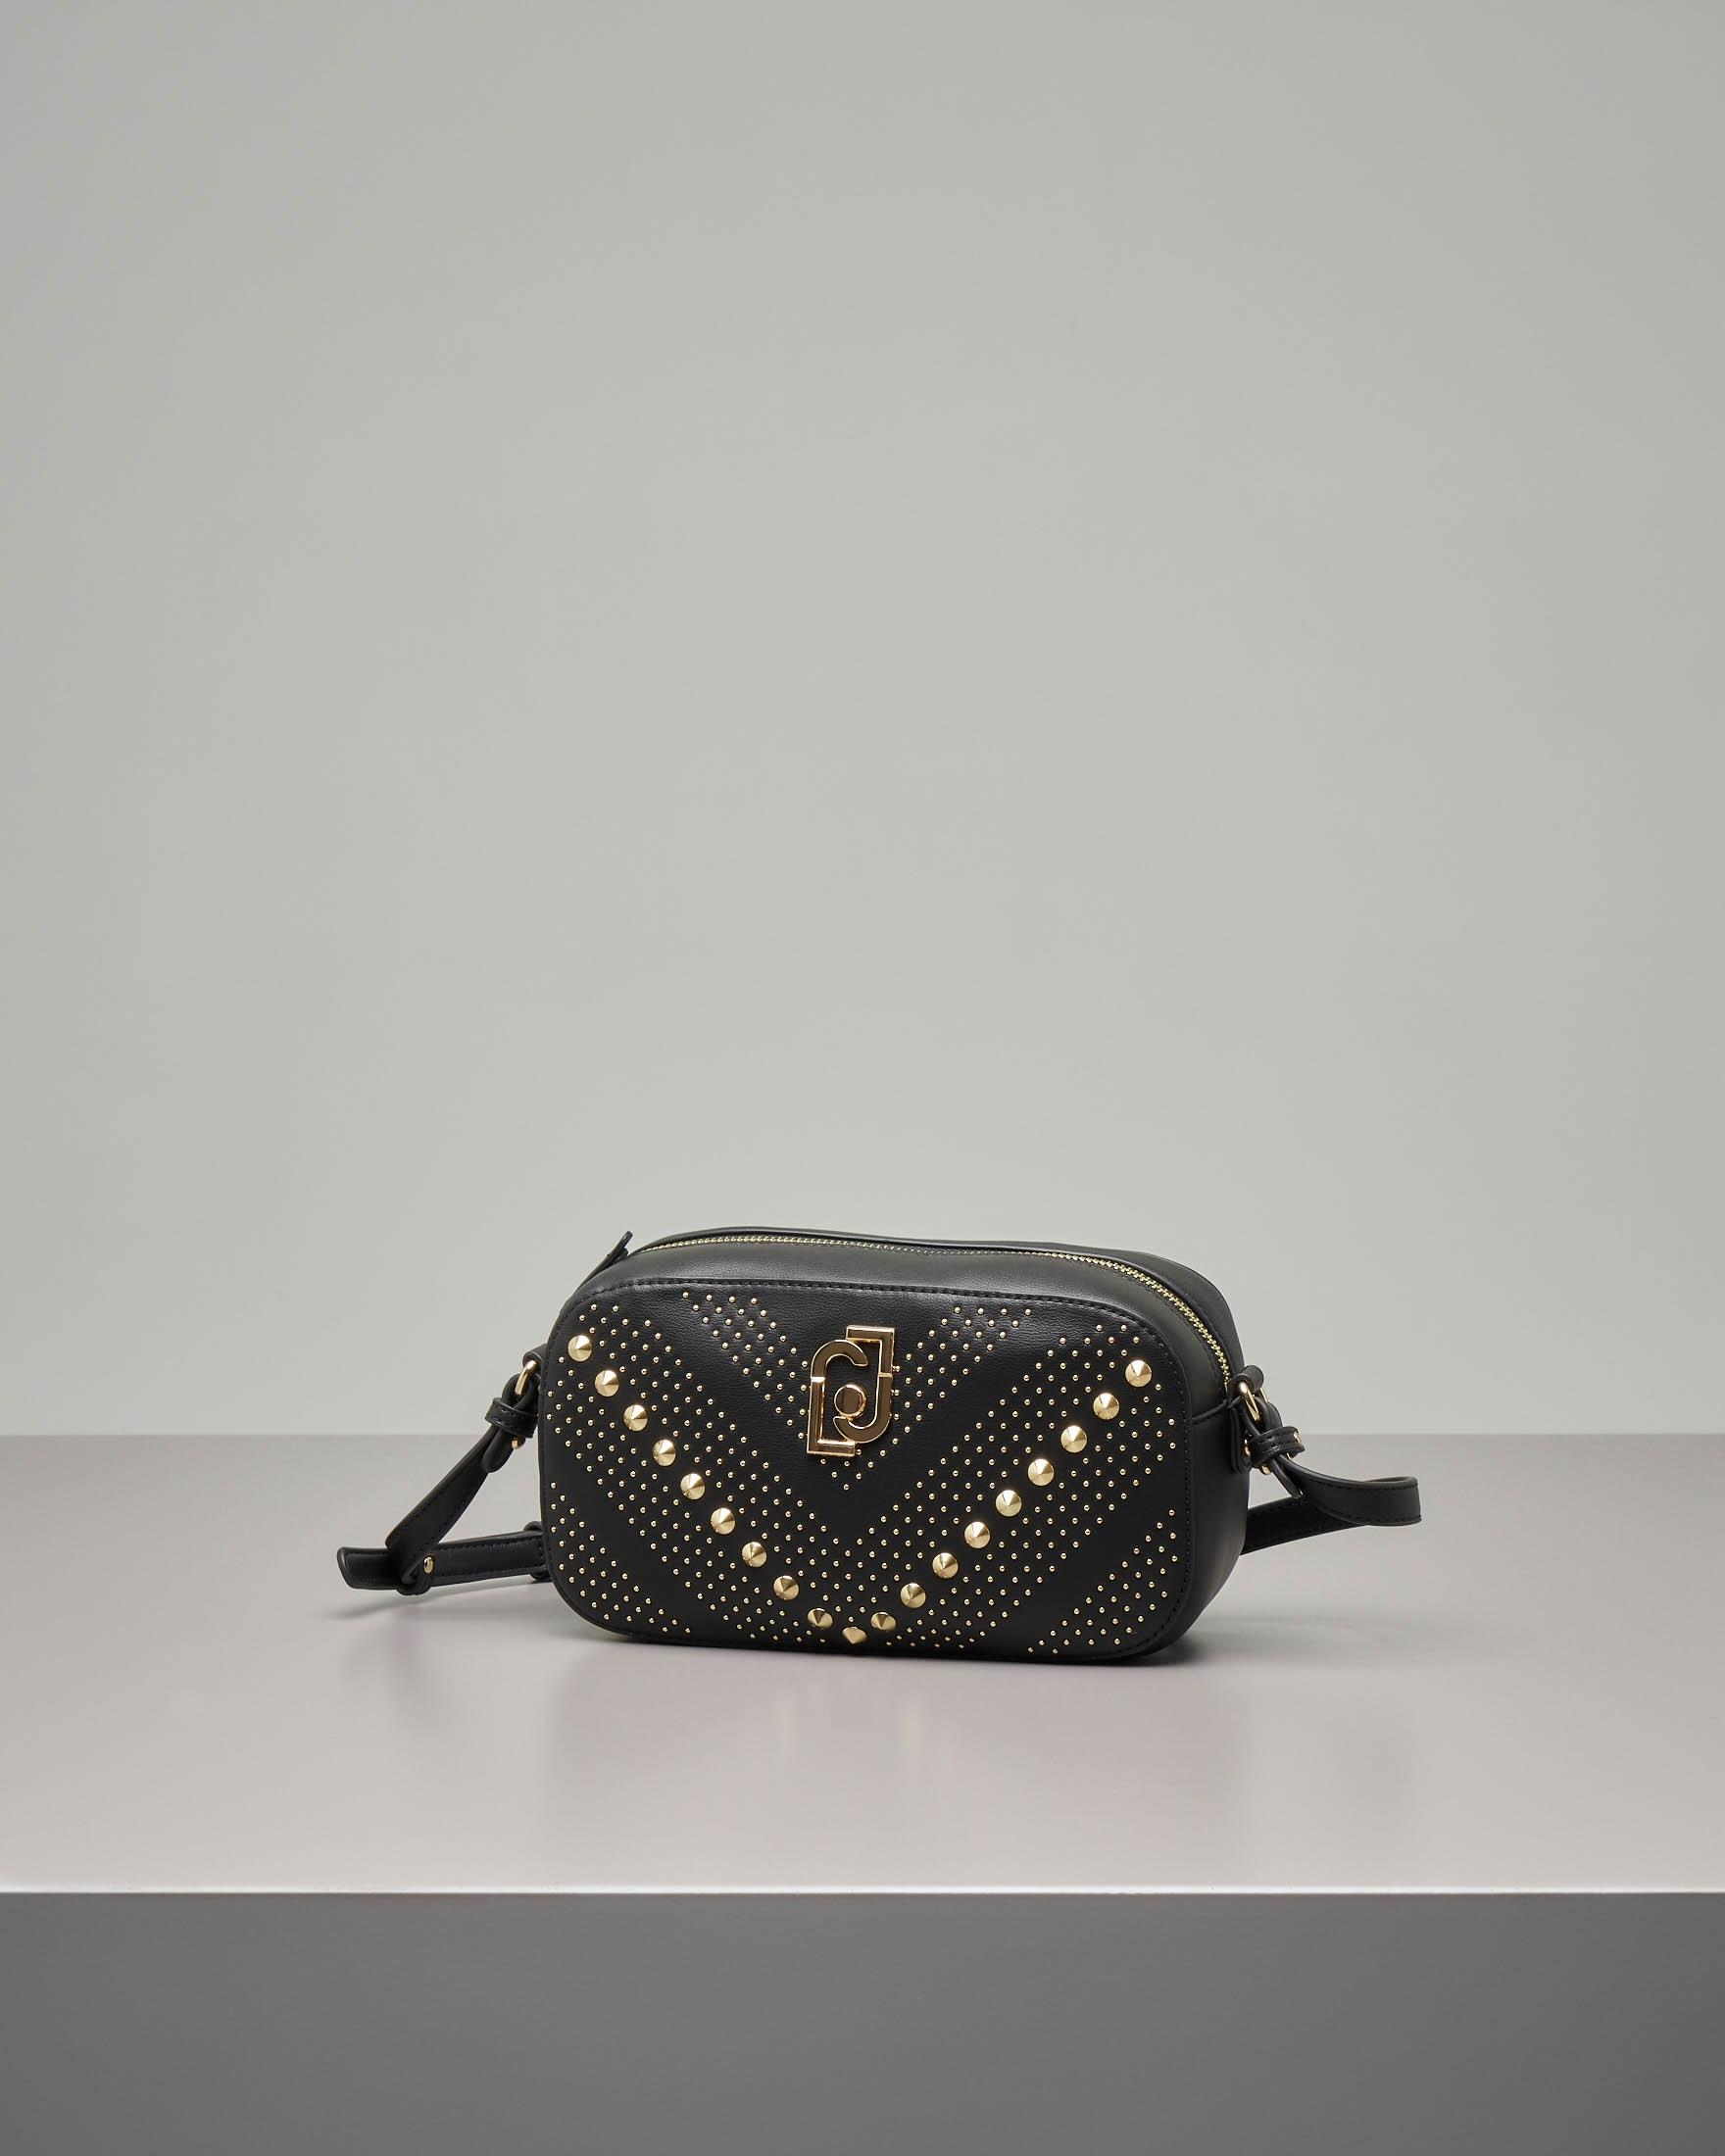 Cross body bag nera in eco pelle con borchie dorate all over